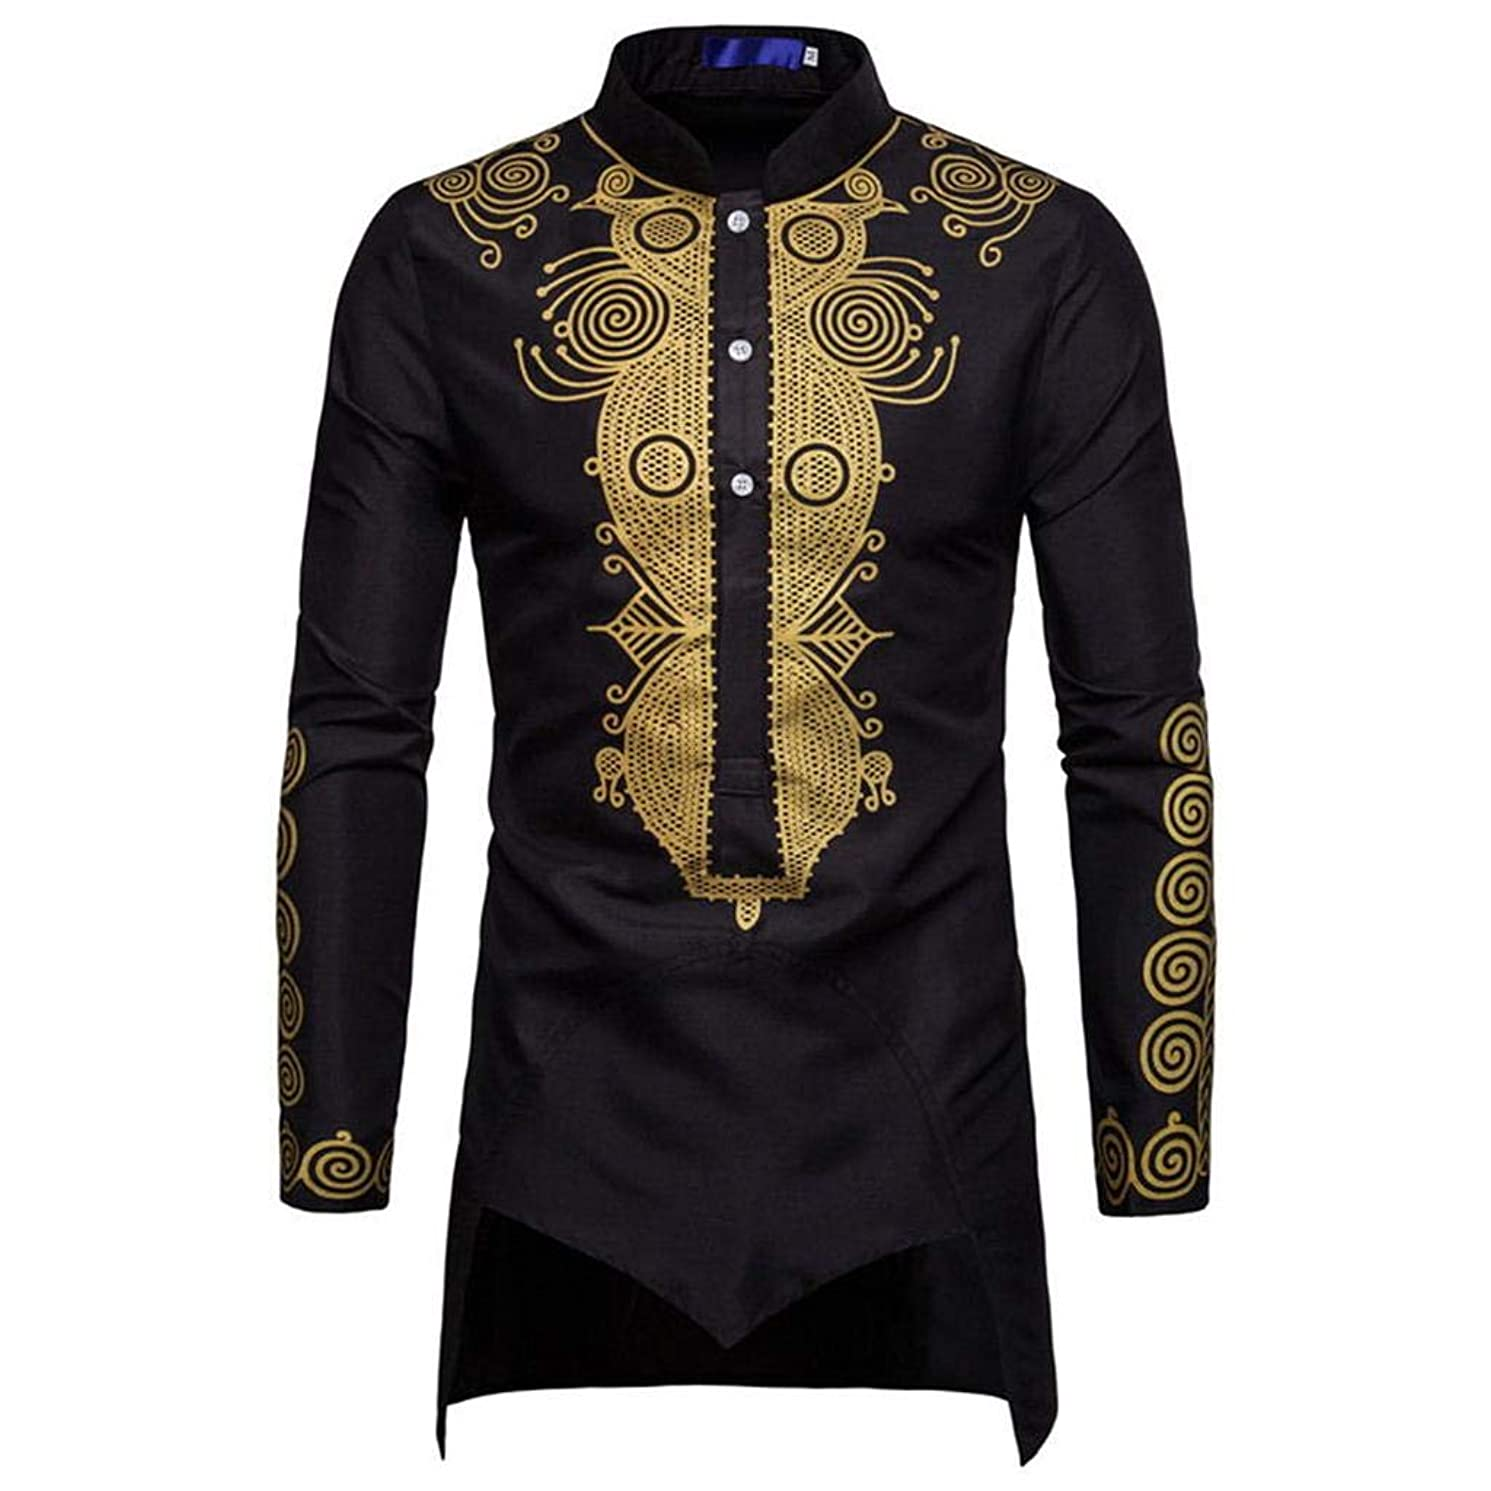 Luxfan US Plus Size Prime Mens Dashiki African Clothing Traditional Printed Long Henley Shirt